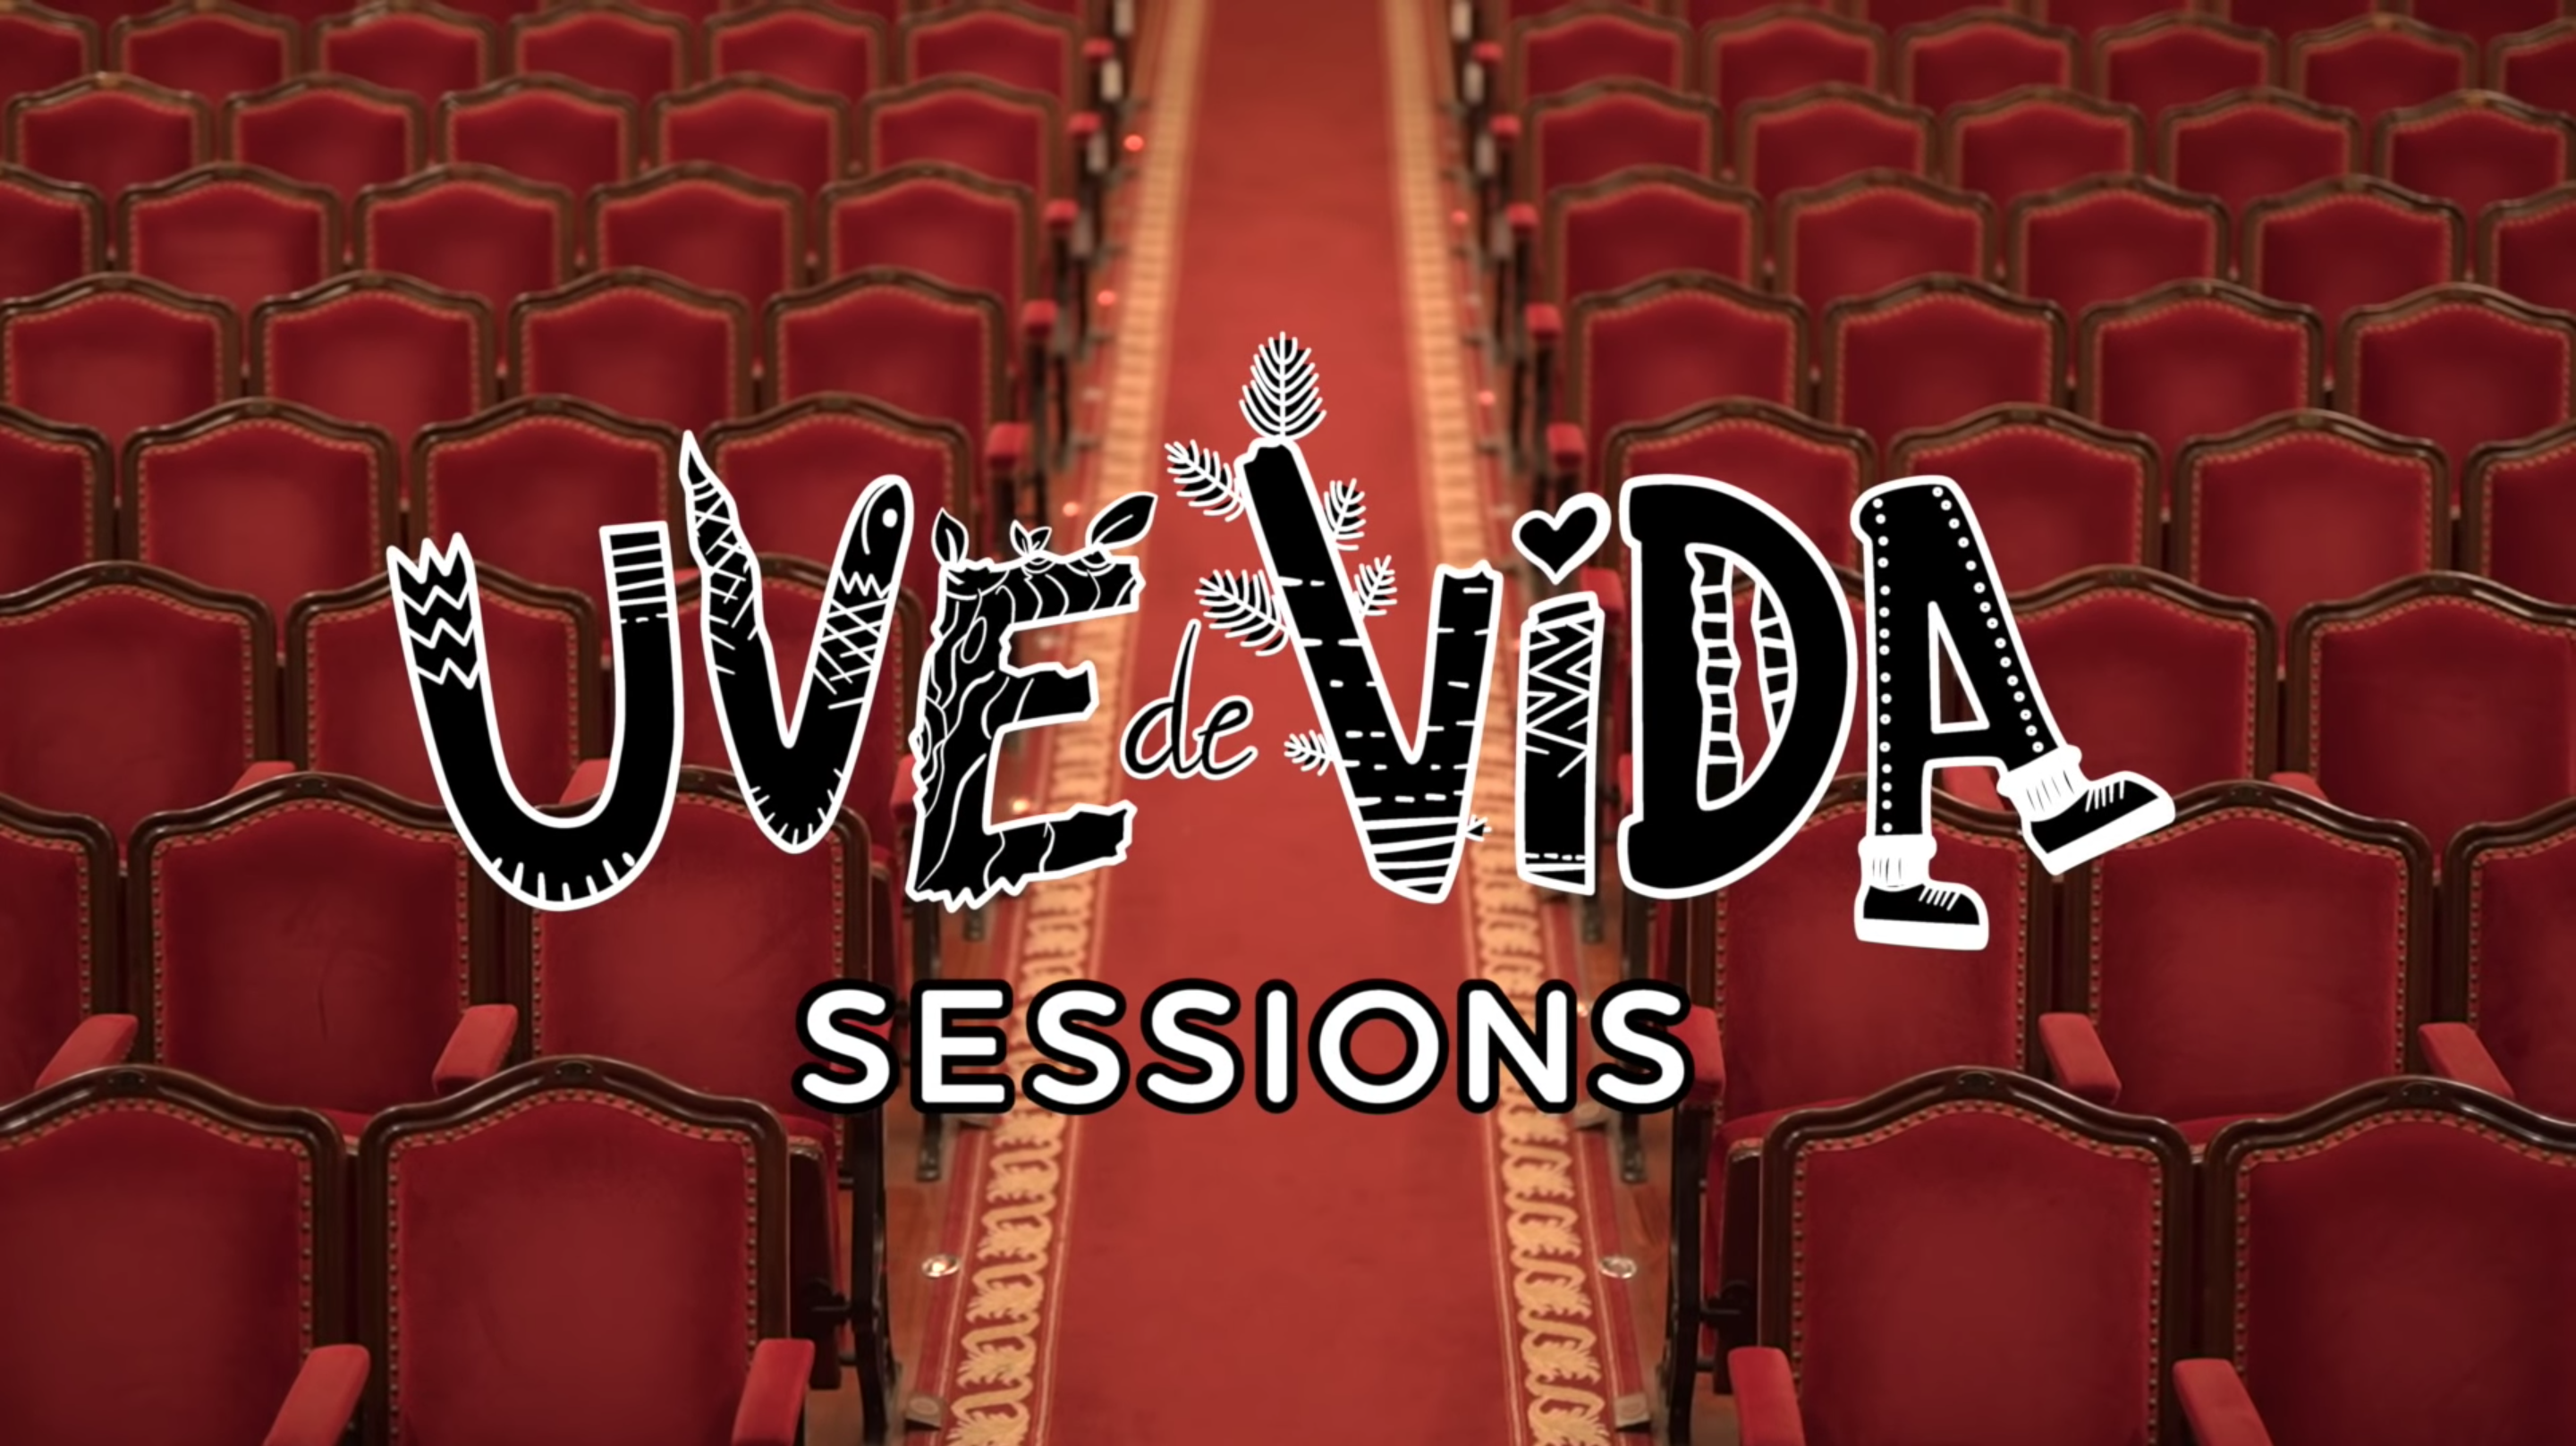 Uvedevida Sessions